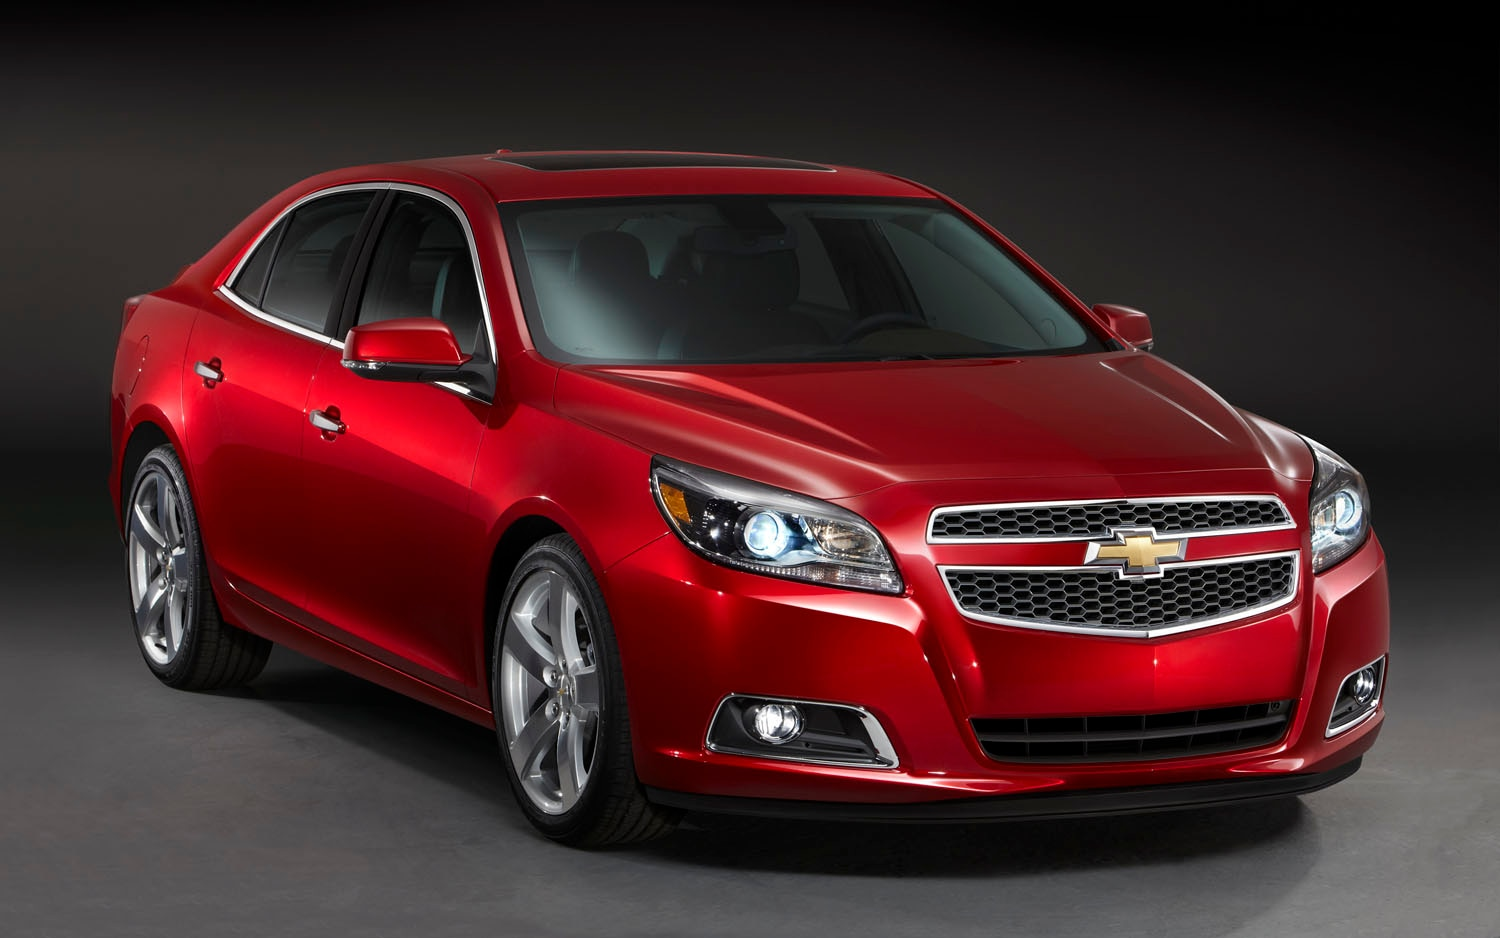 2013 Chevrolet Malibu Front Three Quarter 21